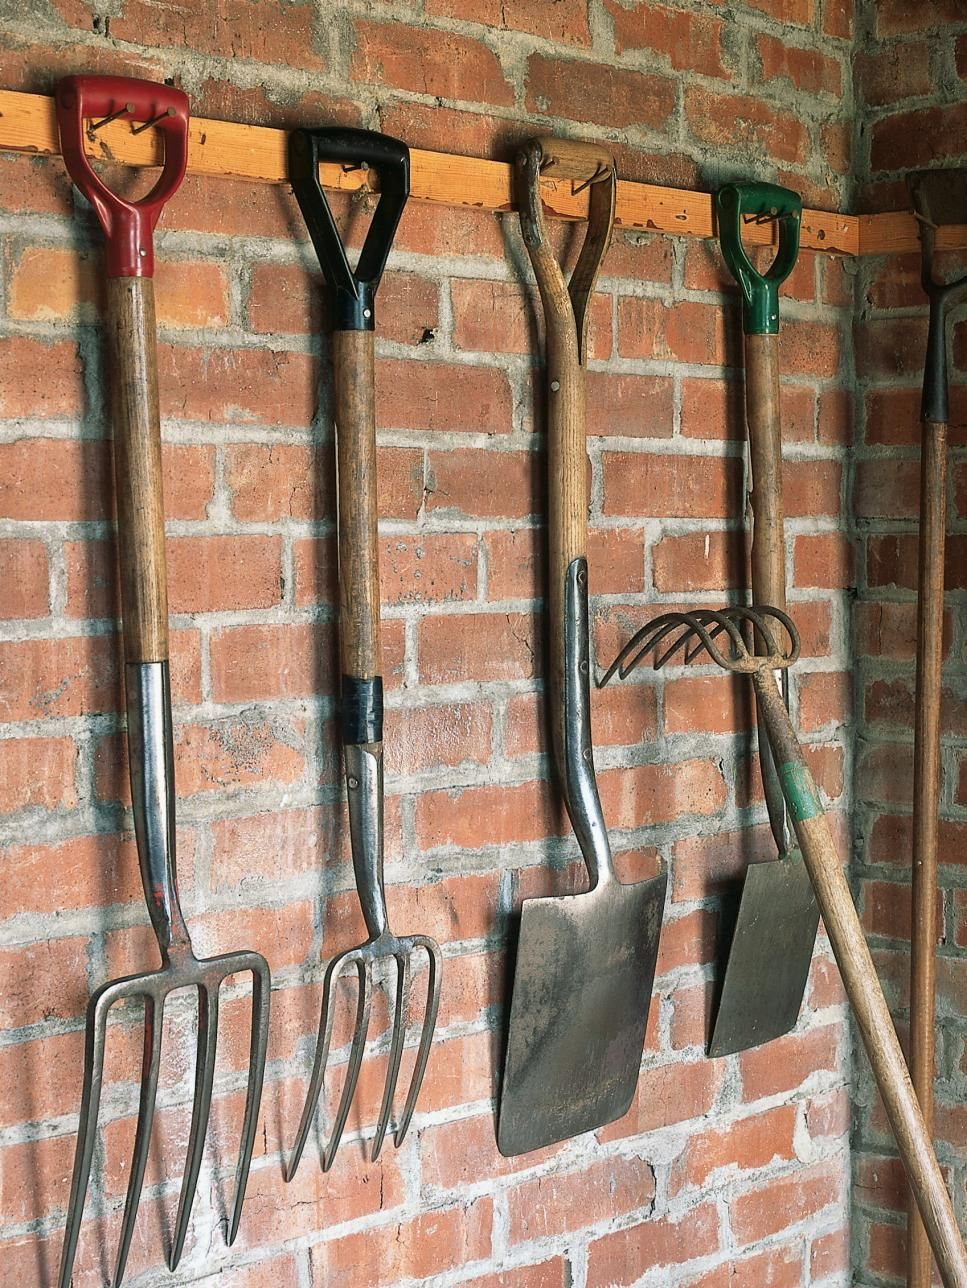 Organize Lawn And Garden Tools In The Garage